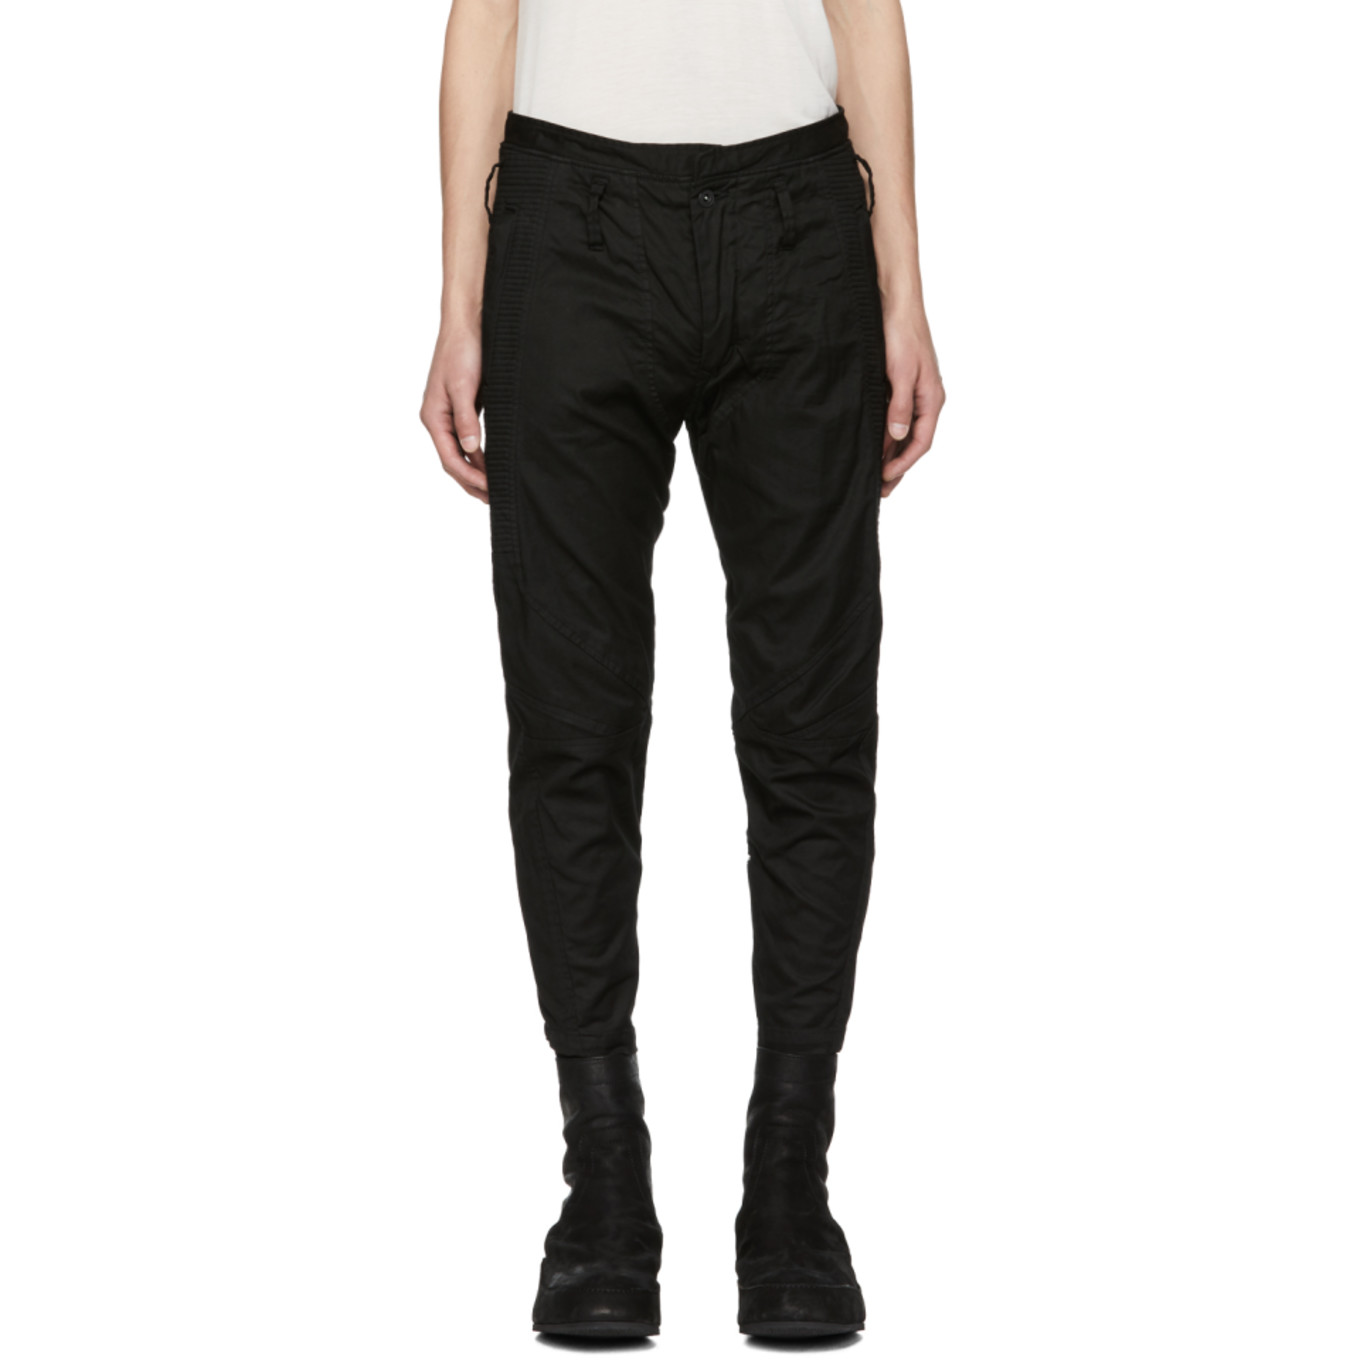 Black Ribbed Trousers by Julius